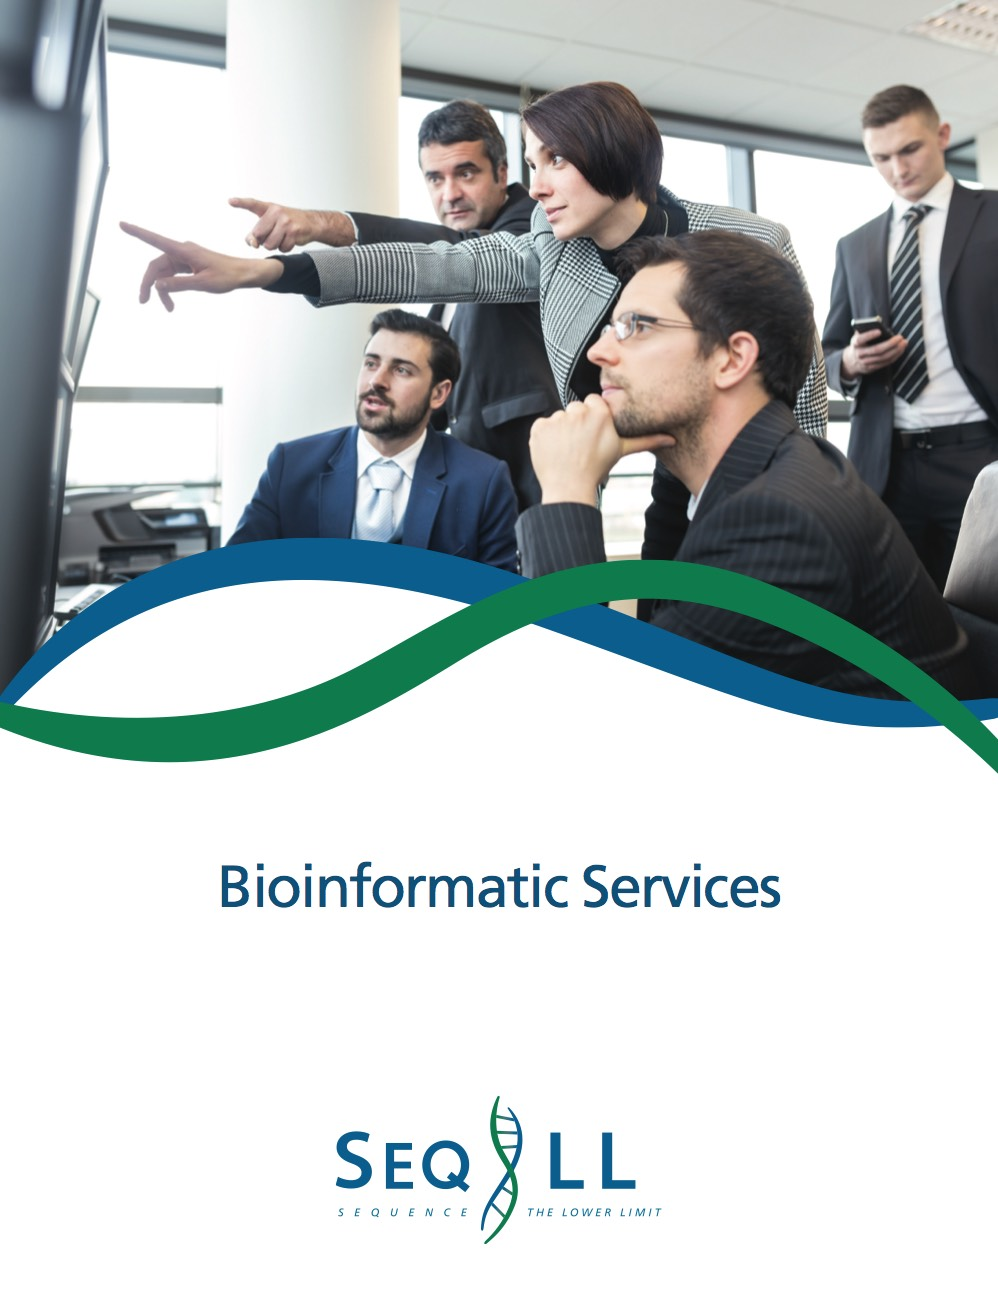 Bioinformatics Services Brochure